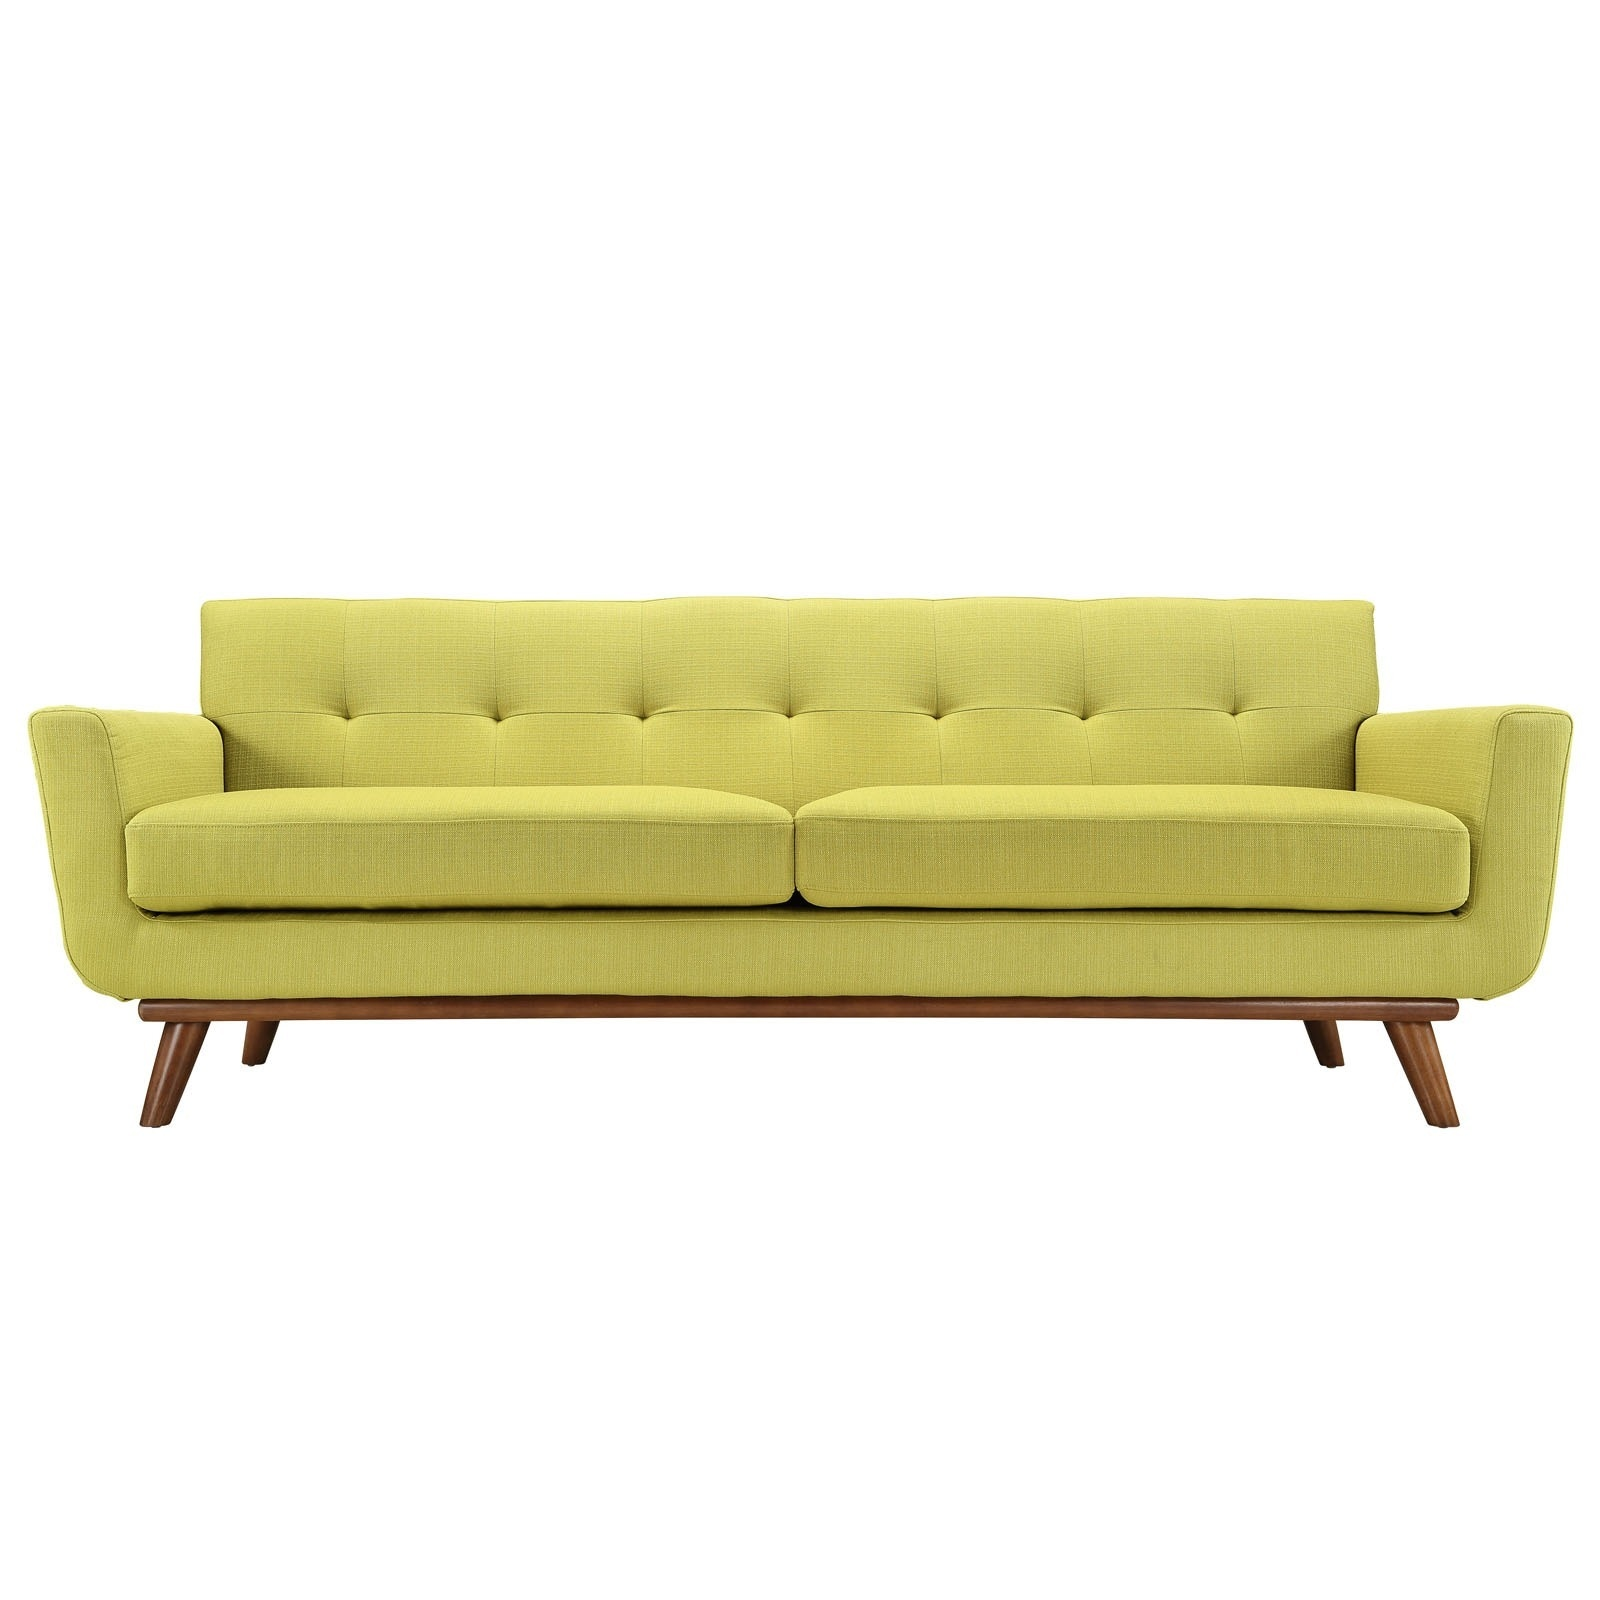 Exceptionnel Shop Palm Canyon Chorro Mid Century Sofa   Free Shipping Today    Overstock.com   8789758